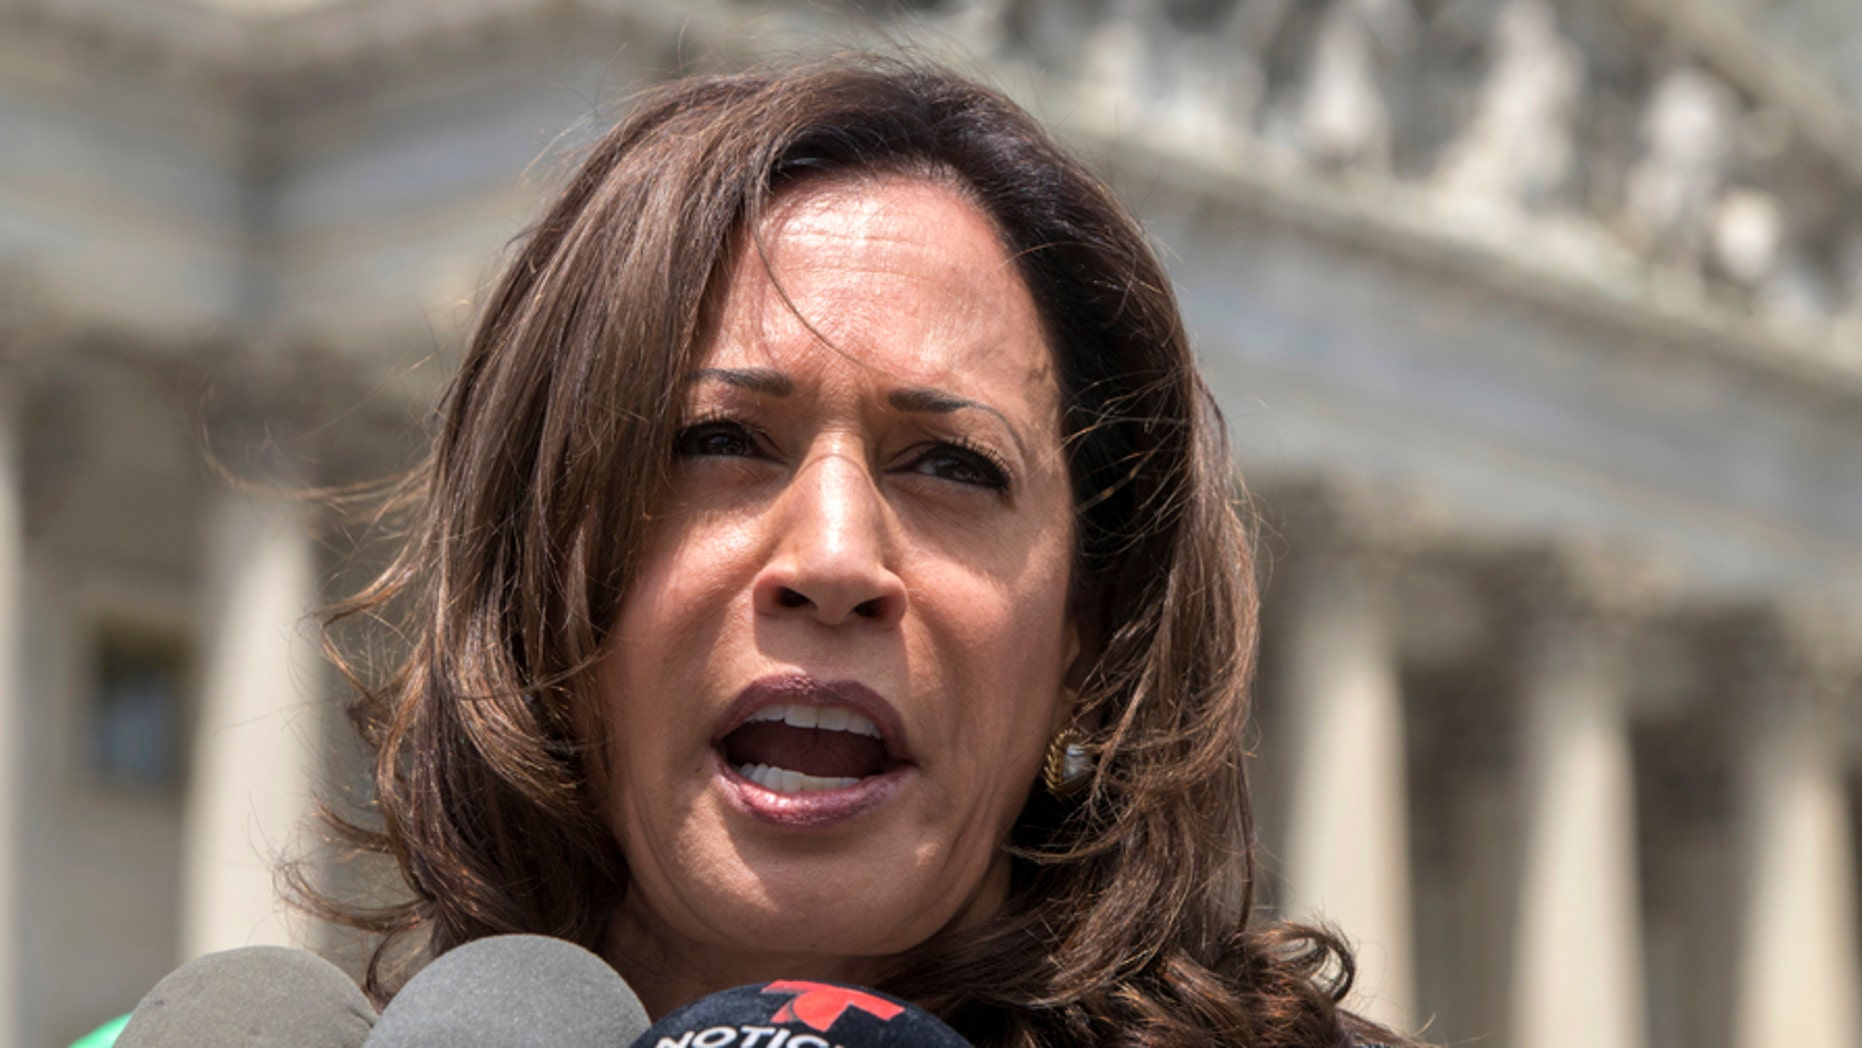 U.S. Sen. Kamala Harris, D-Calif. drew attention and criticism for her exchanges with Brett Kavanaugh during a Senate panel's hearings on Kavanaugh's nomination to the Supreme Court.